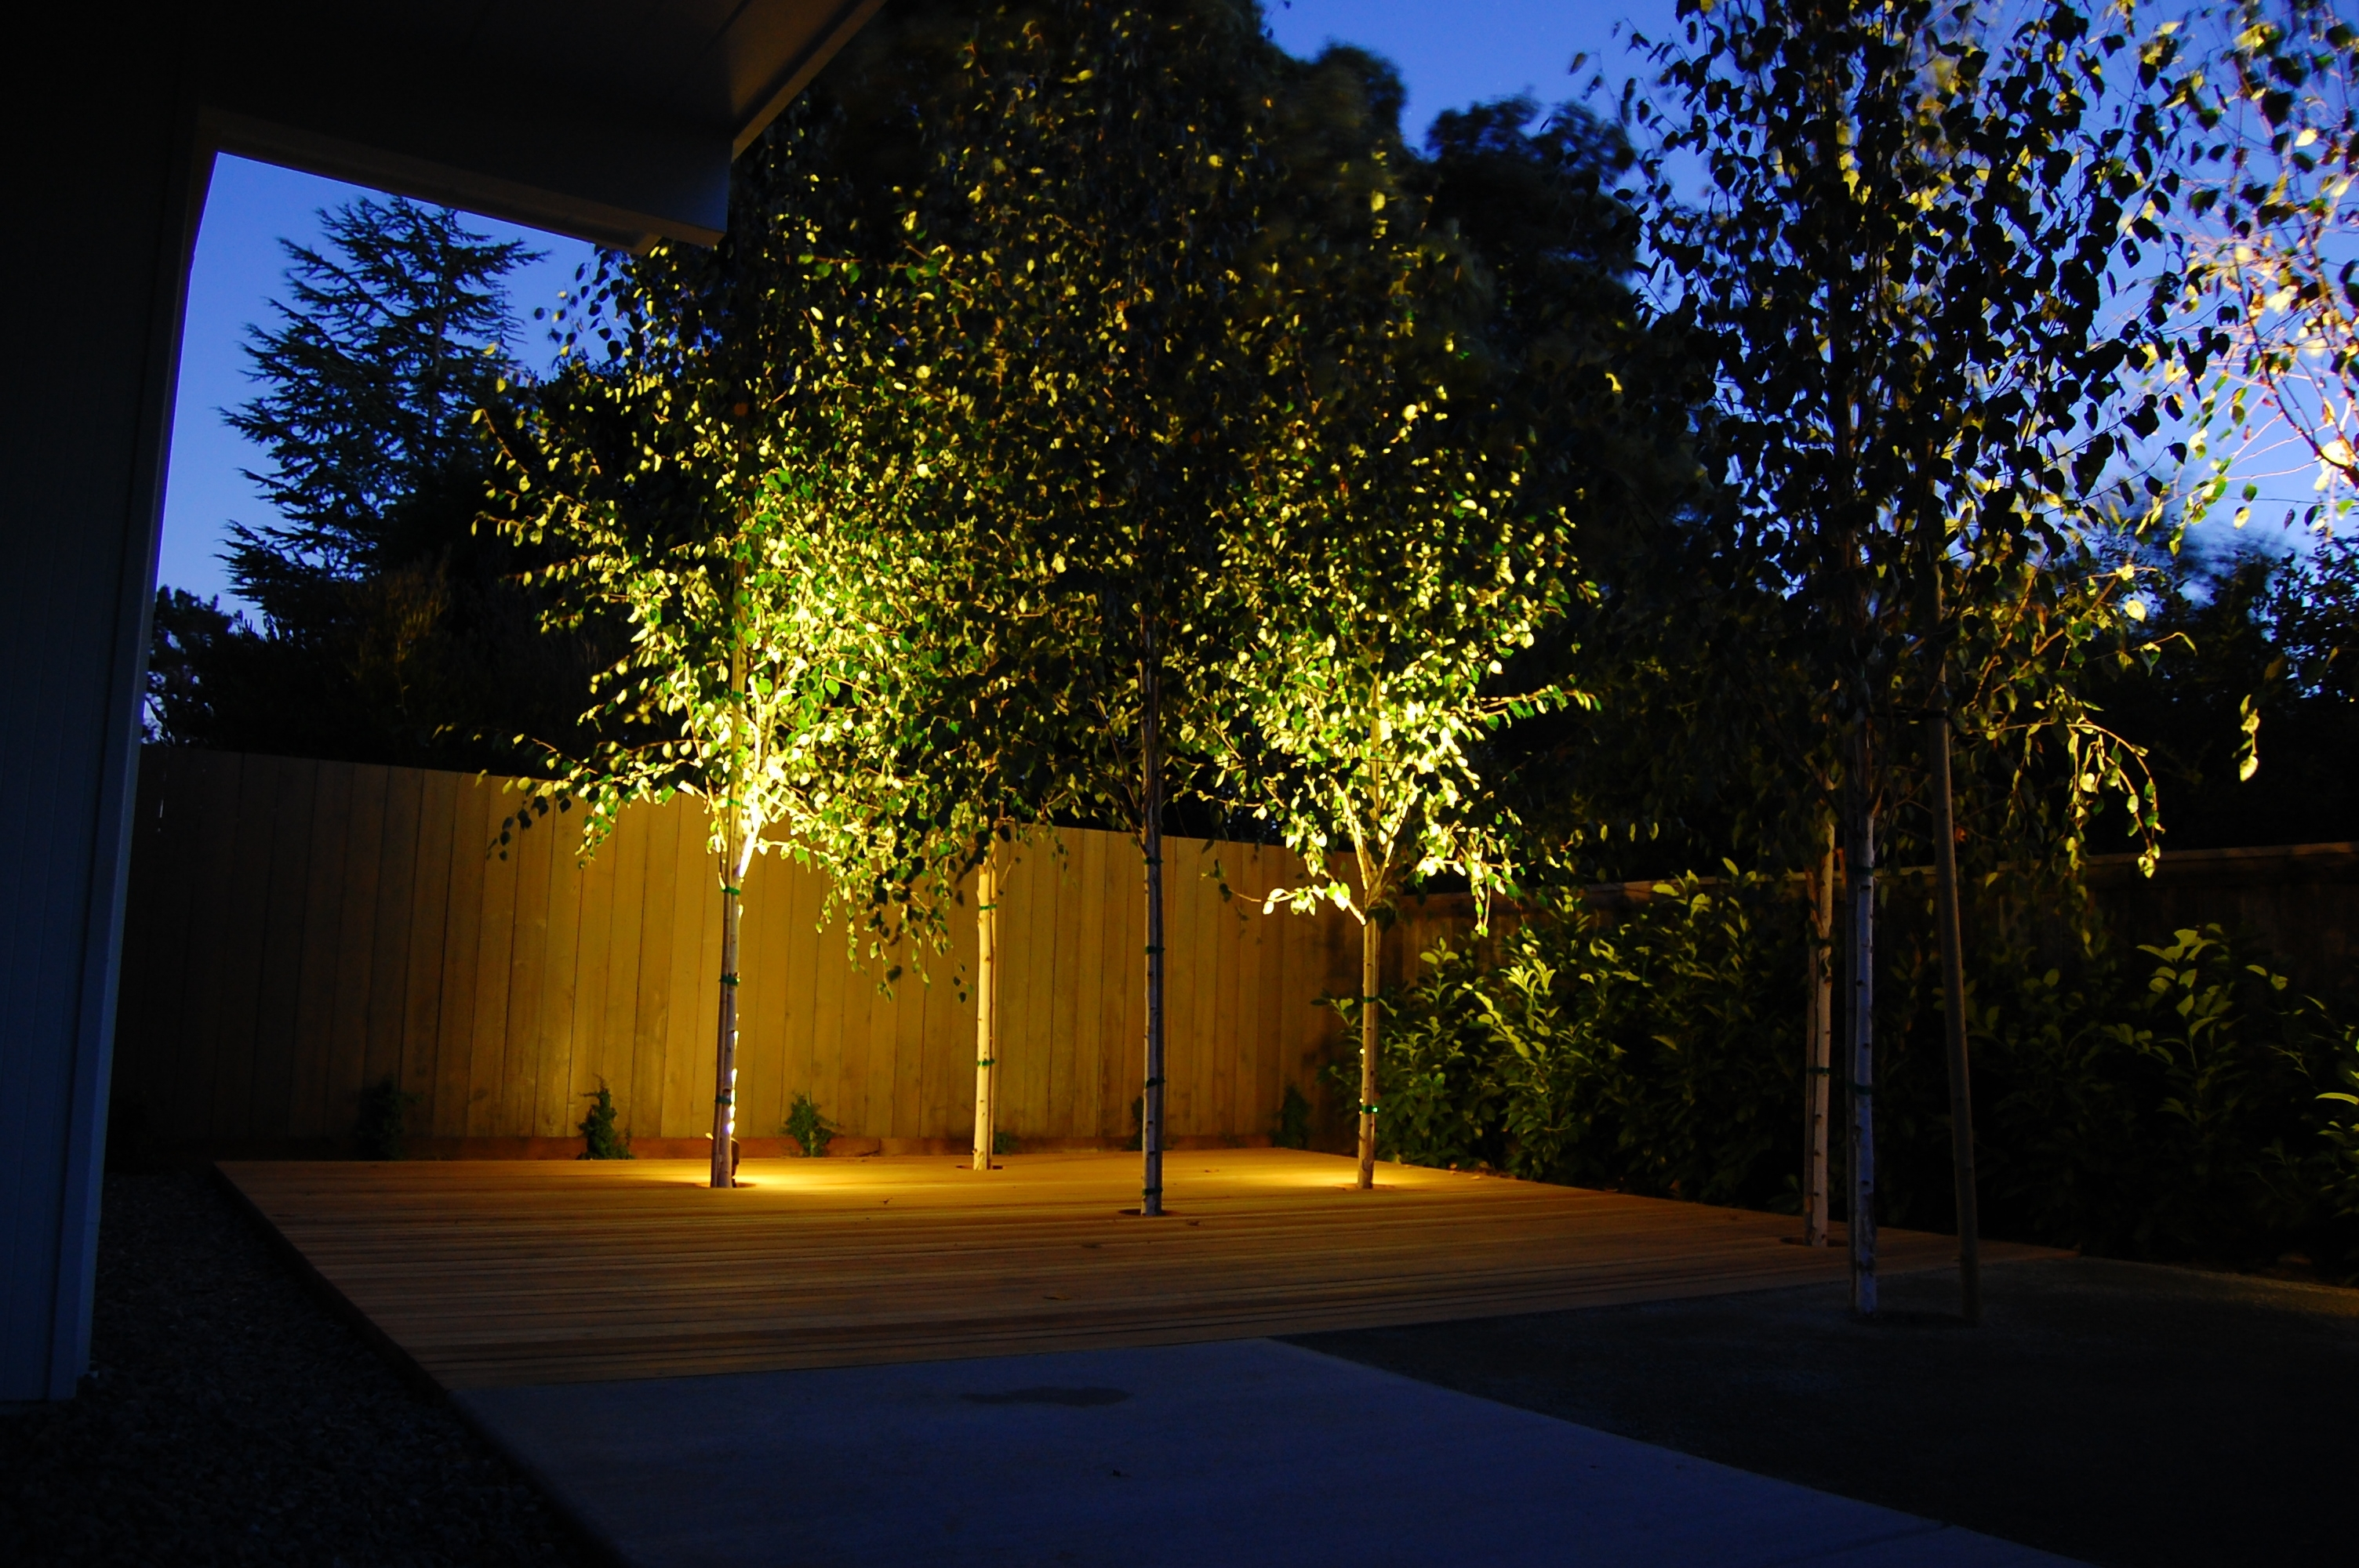 24 Landscaping Lighting Hassle Free Landscape Lighting Within Landscape Spotlights Wonderful Landscape Spotlights At Night